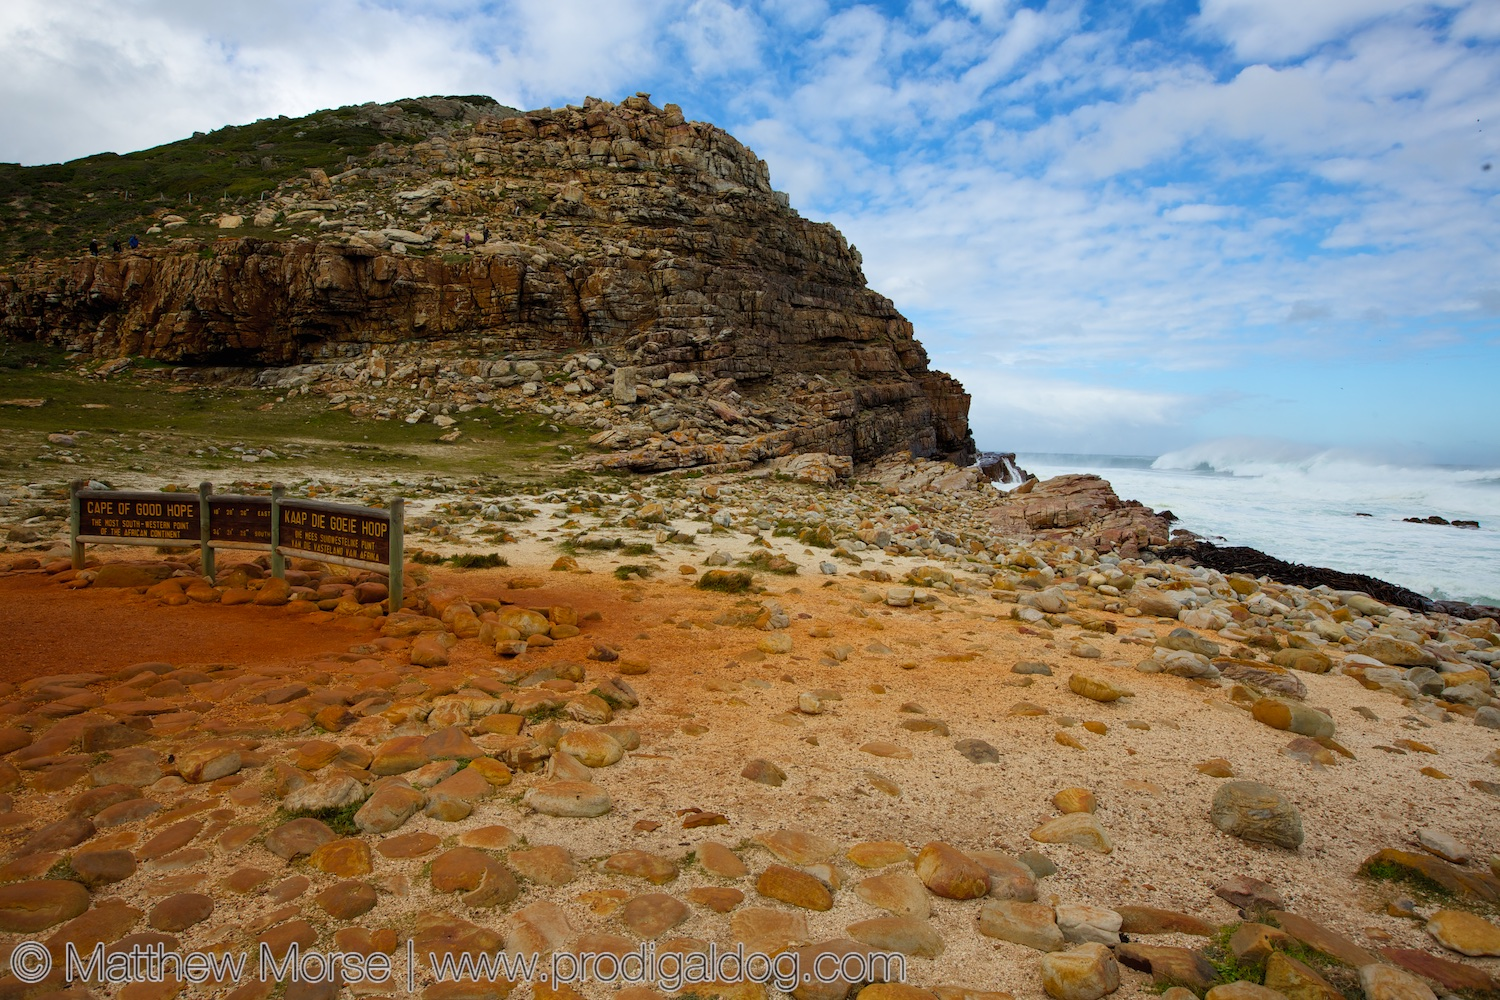 good hope Cape of good hope: cape of good hope, rocky promontory at the southern end of cape peninsula, western cape province, south africa it was first sighted by the portuguese navigator bartolomeu dias in 1488 on his return voyage to portugal after ascertaining the southern limits of the african.